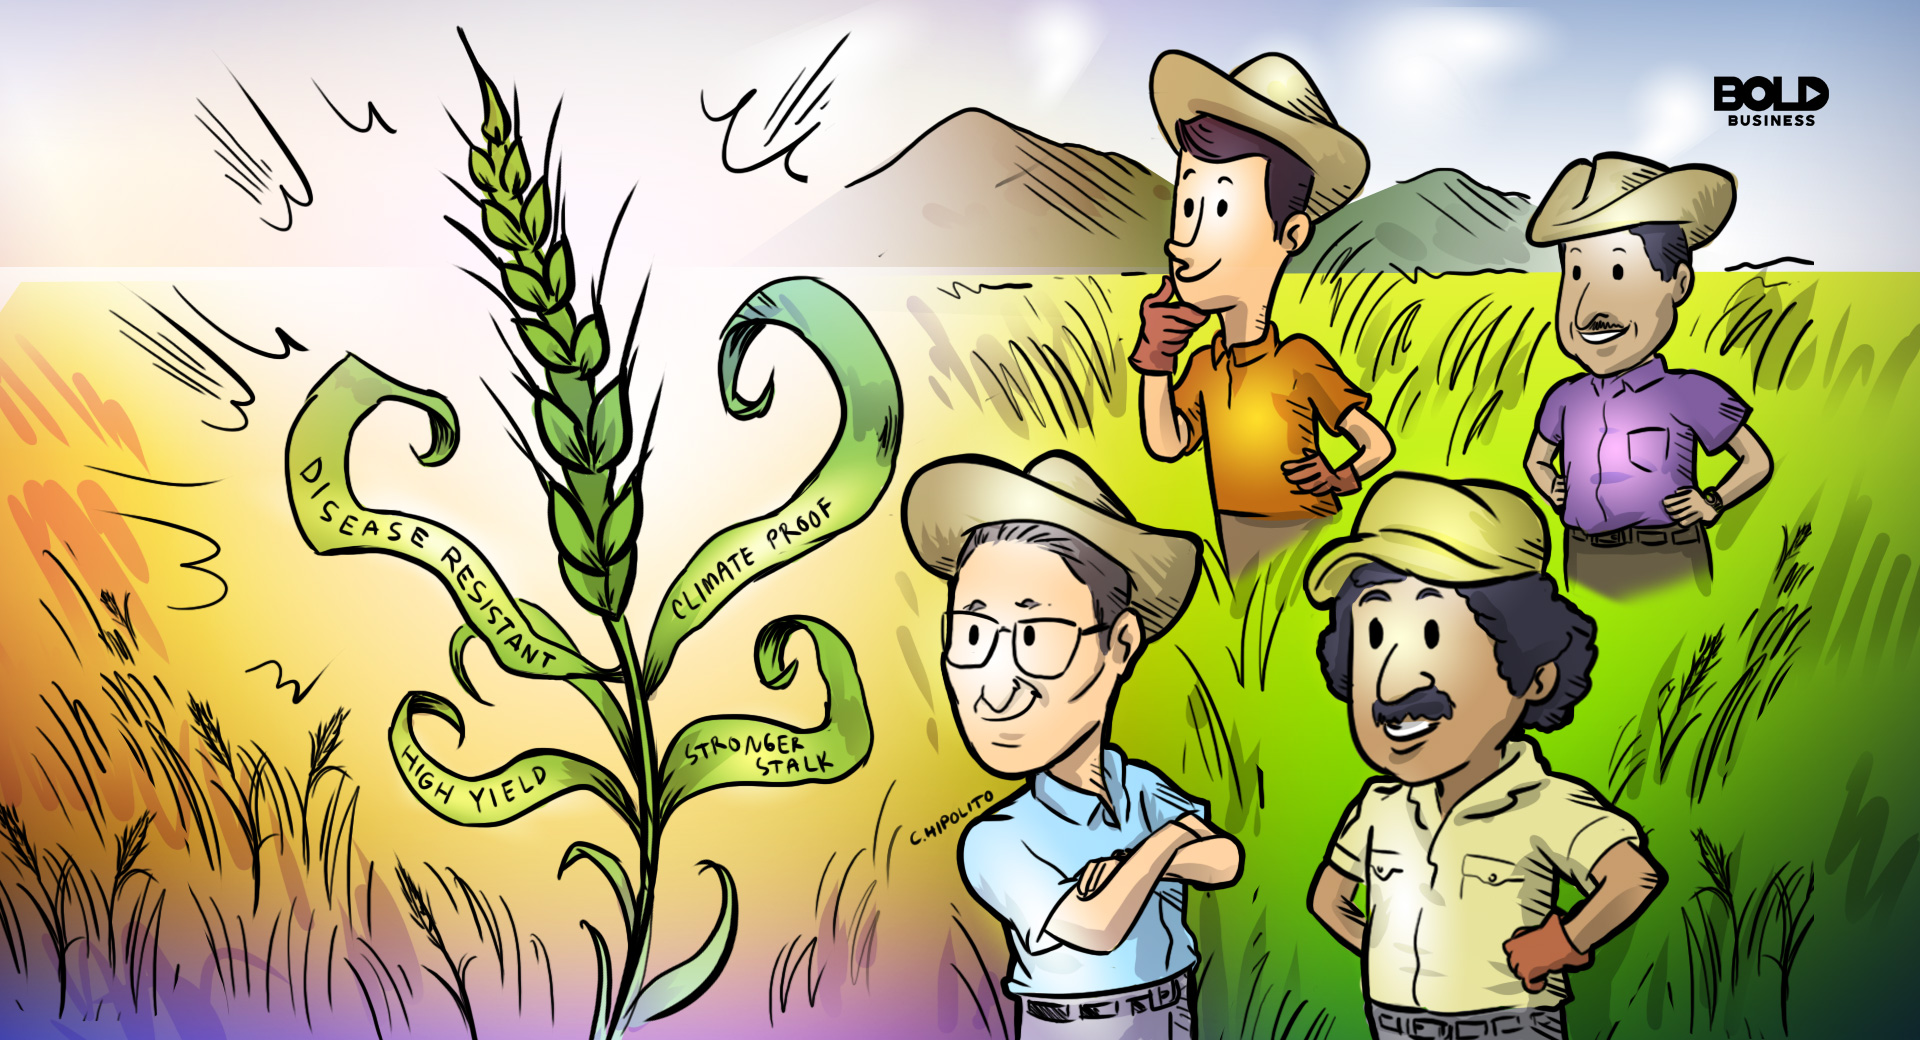 a cartoon norman borlaug's disease resistant wheat strain that has a higher yield has helped mexican farmers in 1963